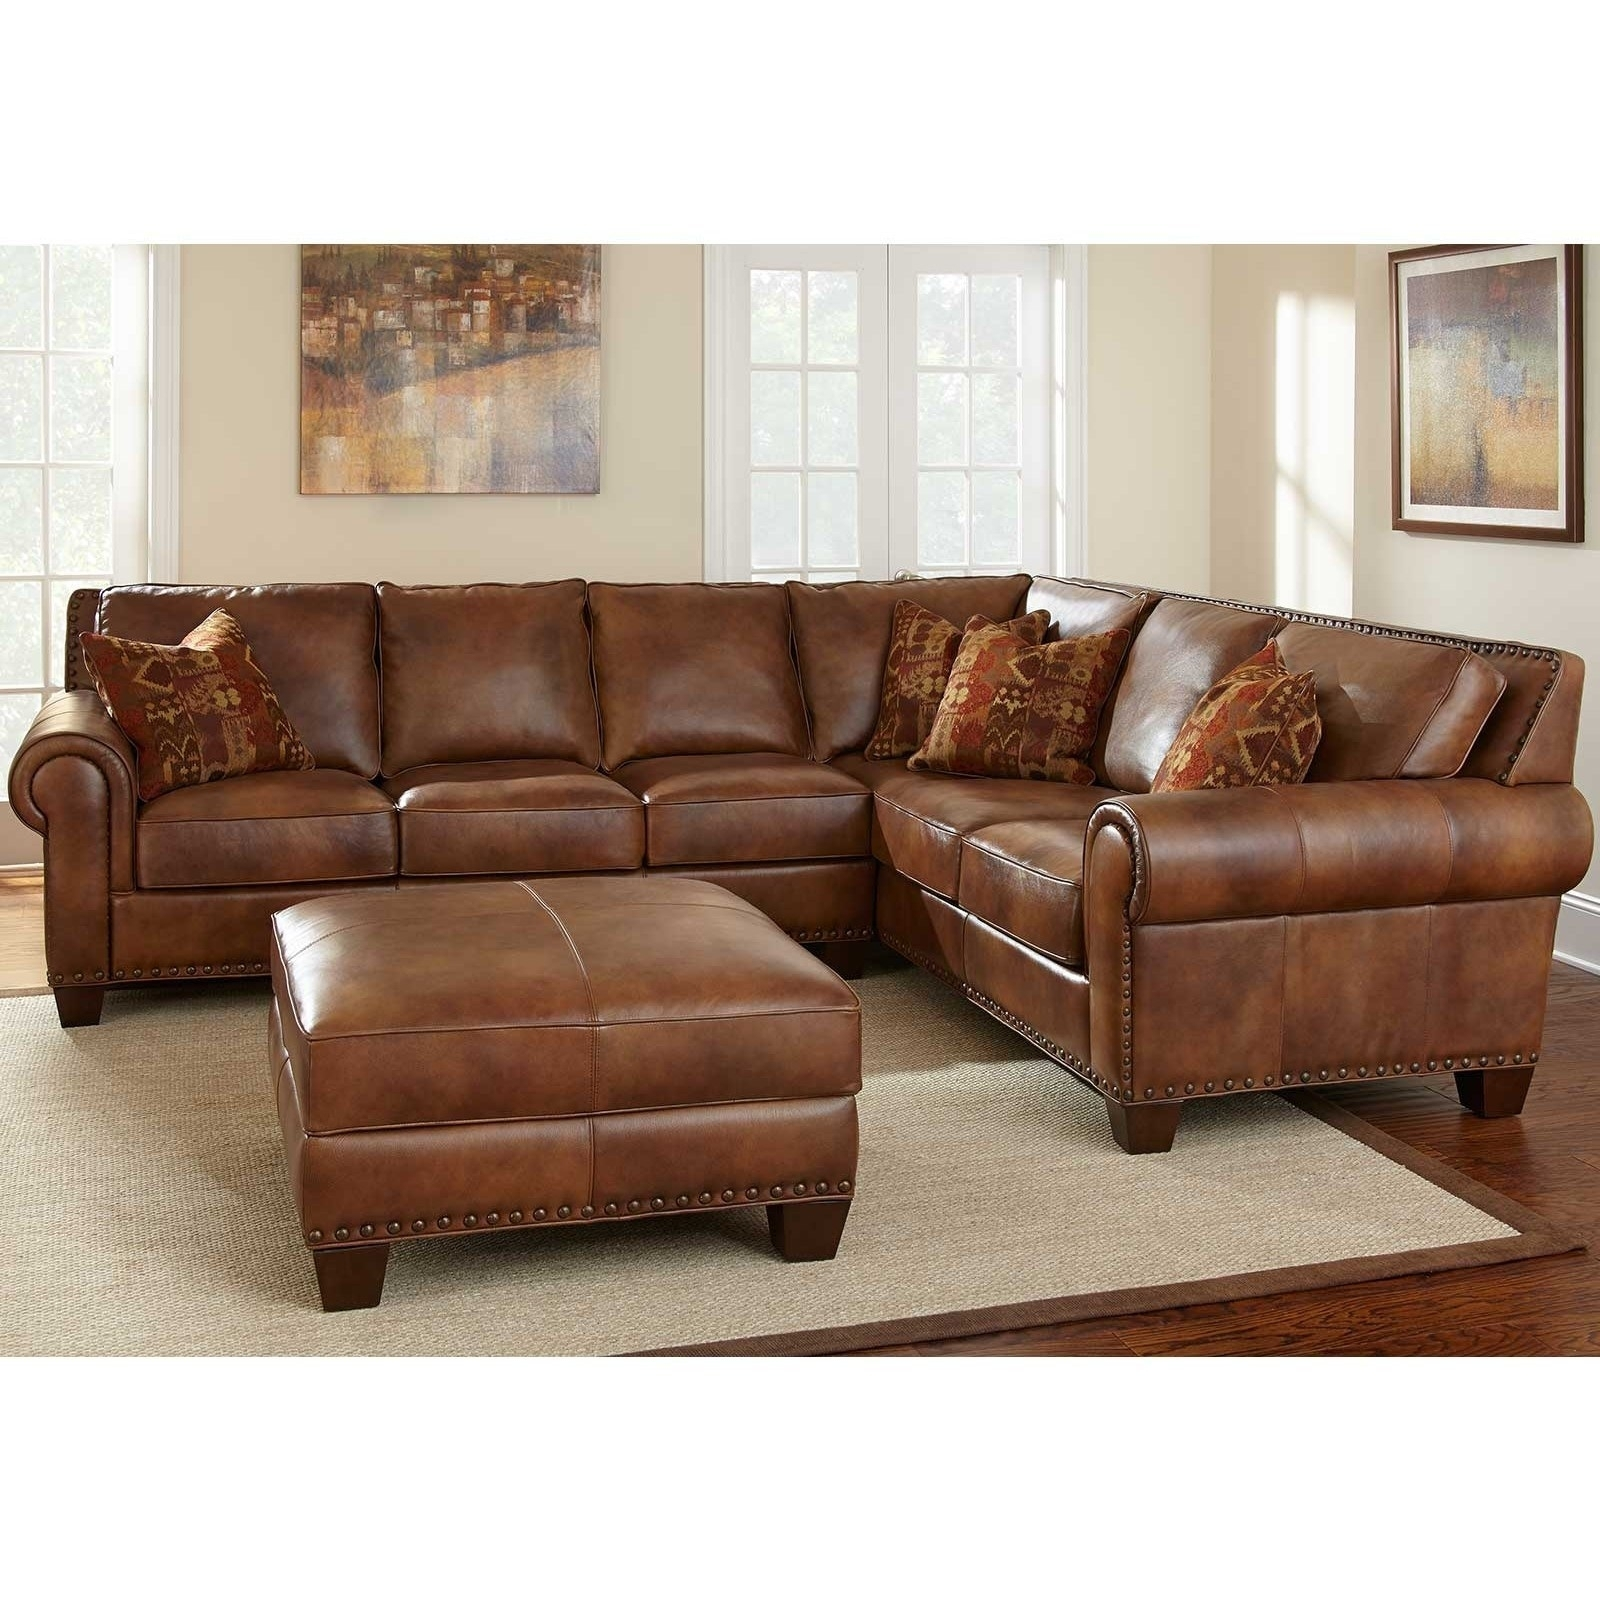 Cognac Sectional Sofa @ay13 – Roccommunity intended for Tenny Dark Grey 2 Piece Left Facing Chaise Sectionals With 2 Headrest (Image 10 of 30)